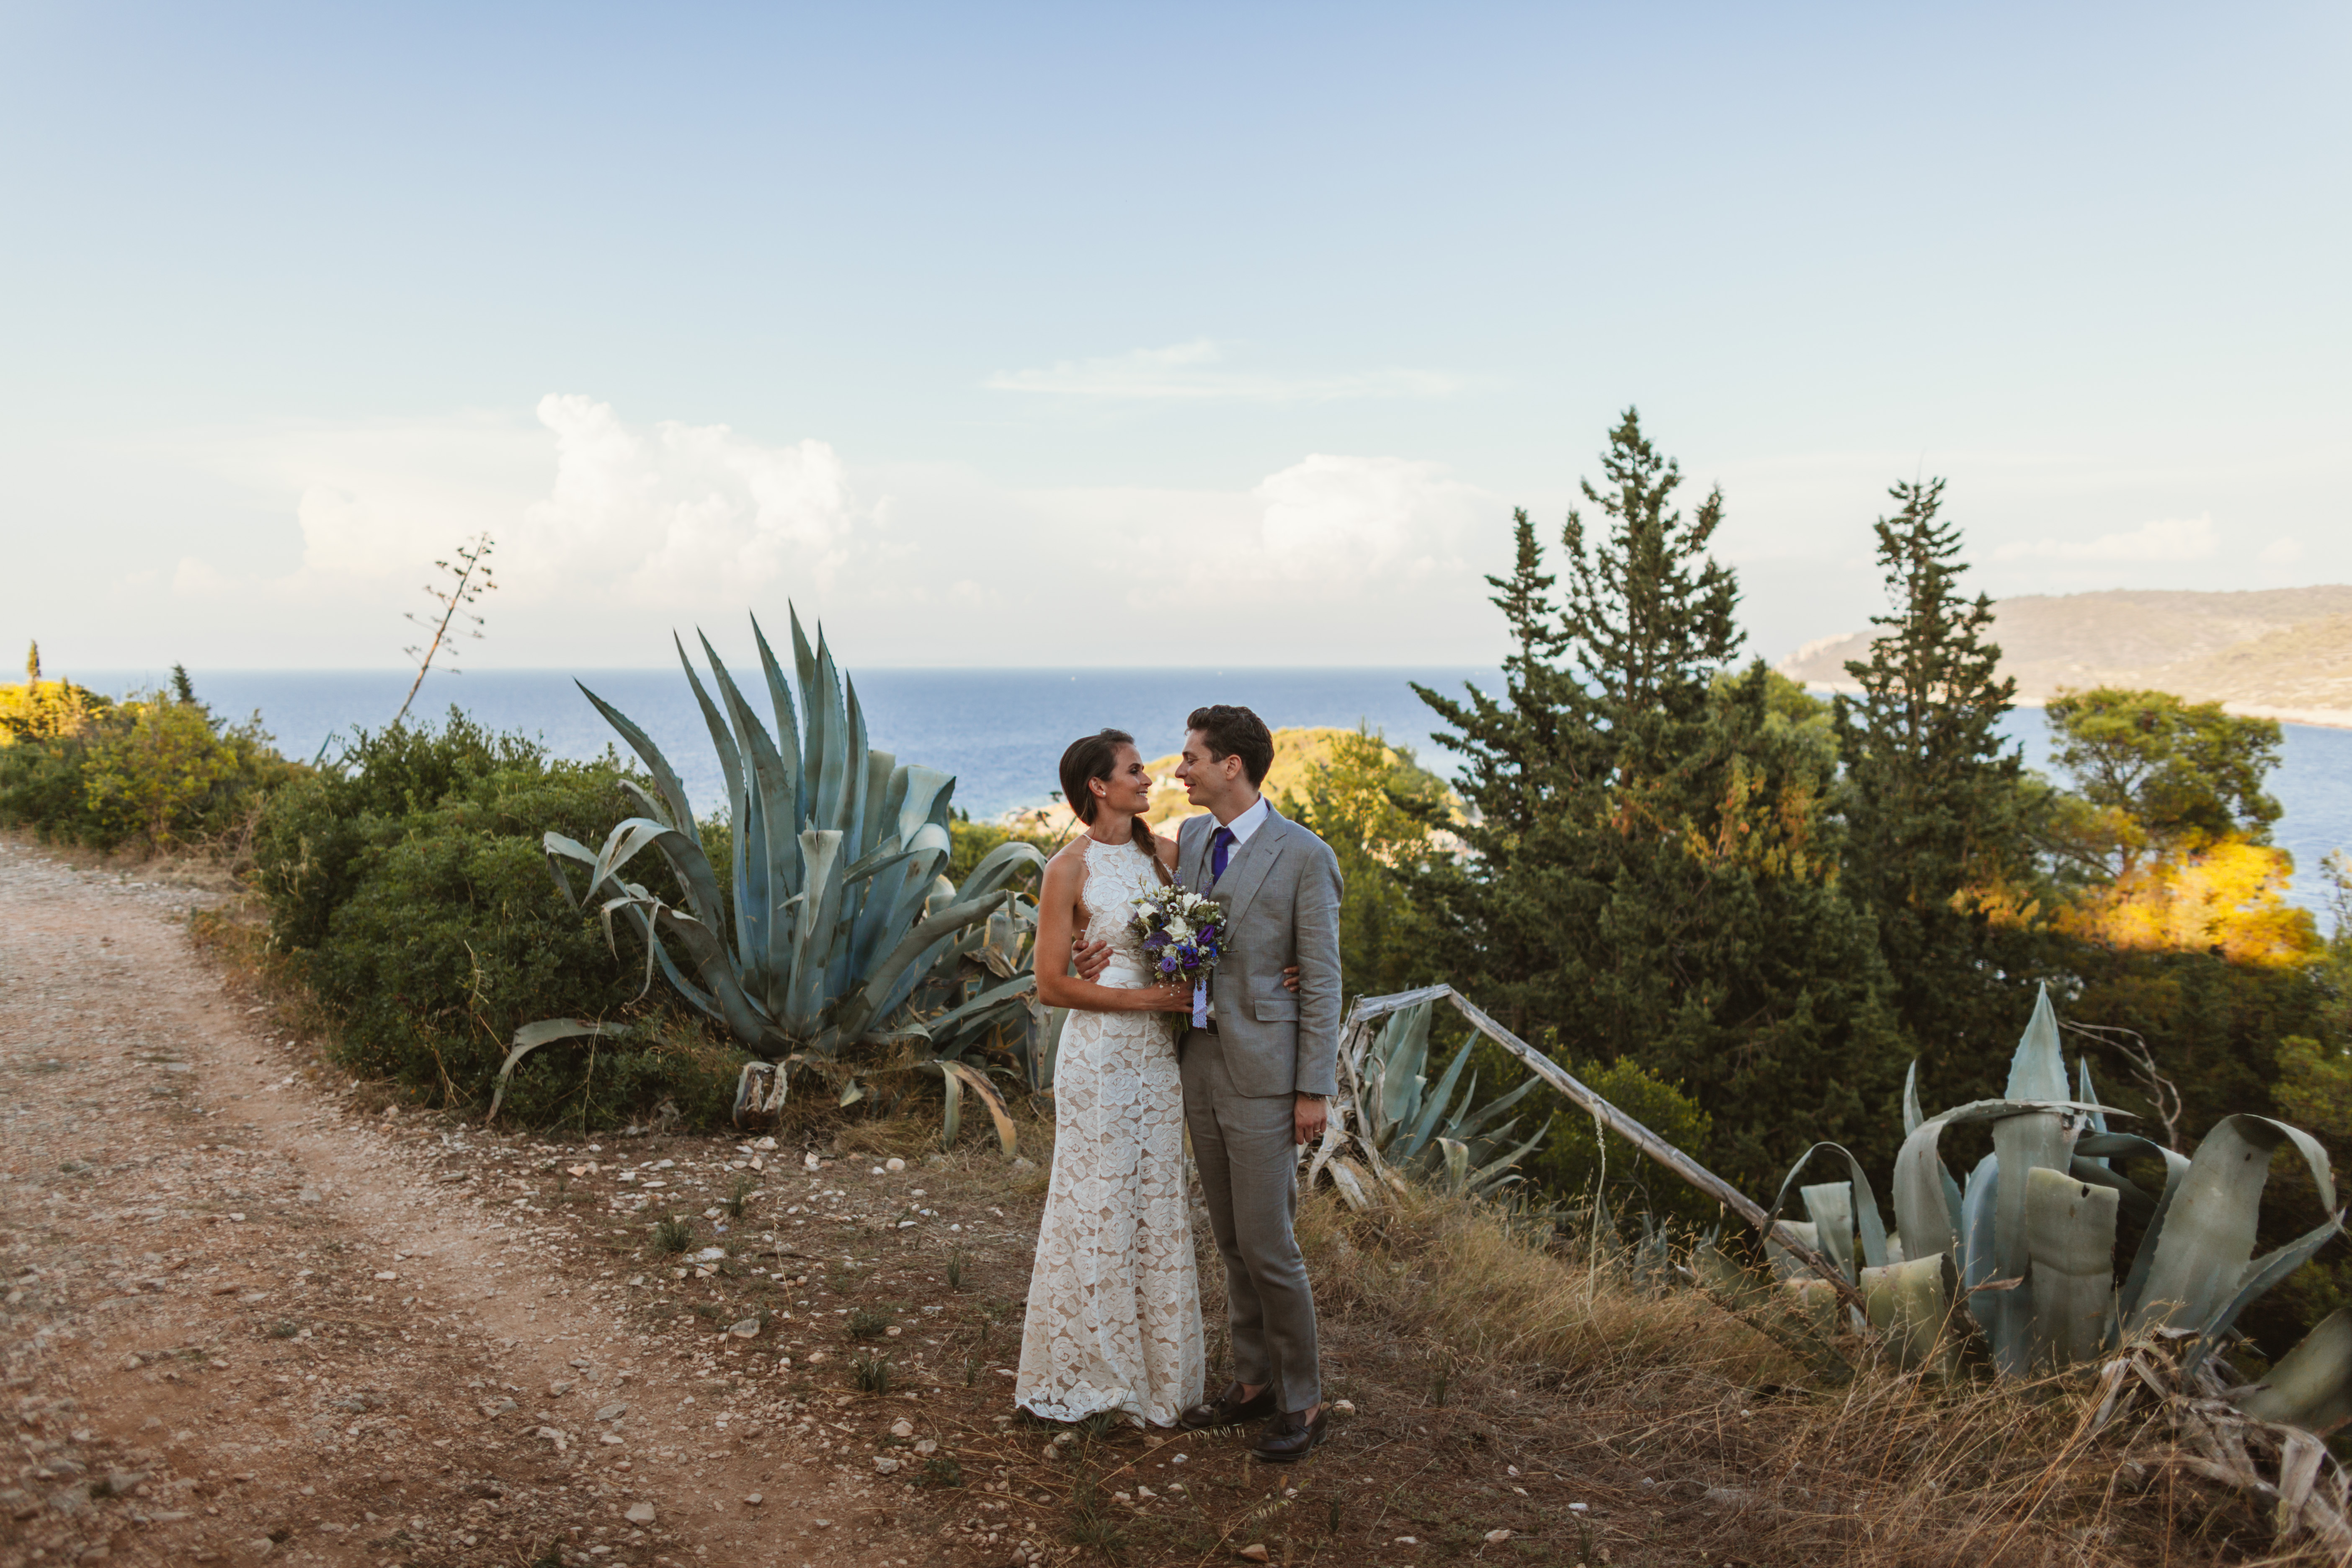 Beach wedding in Croatia: Renee & Lukas